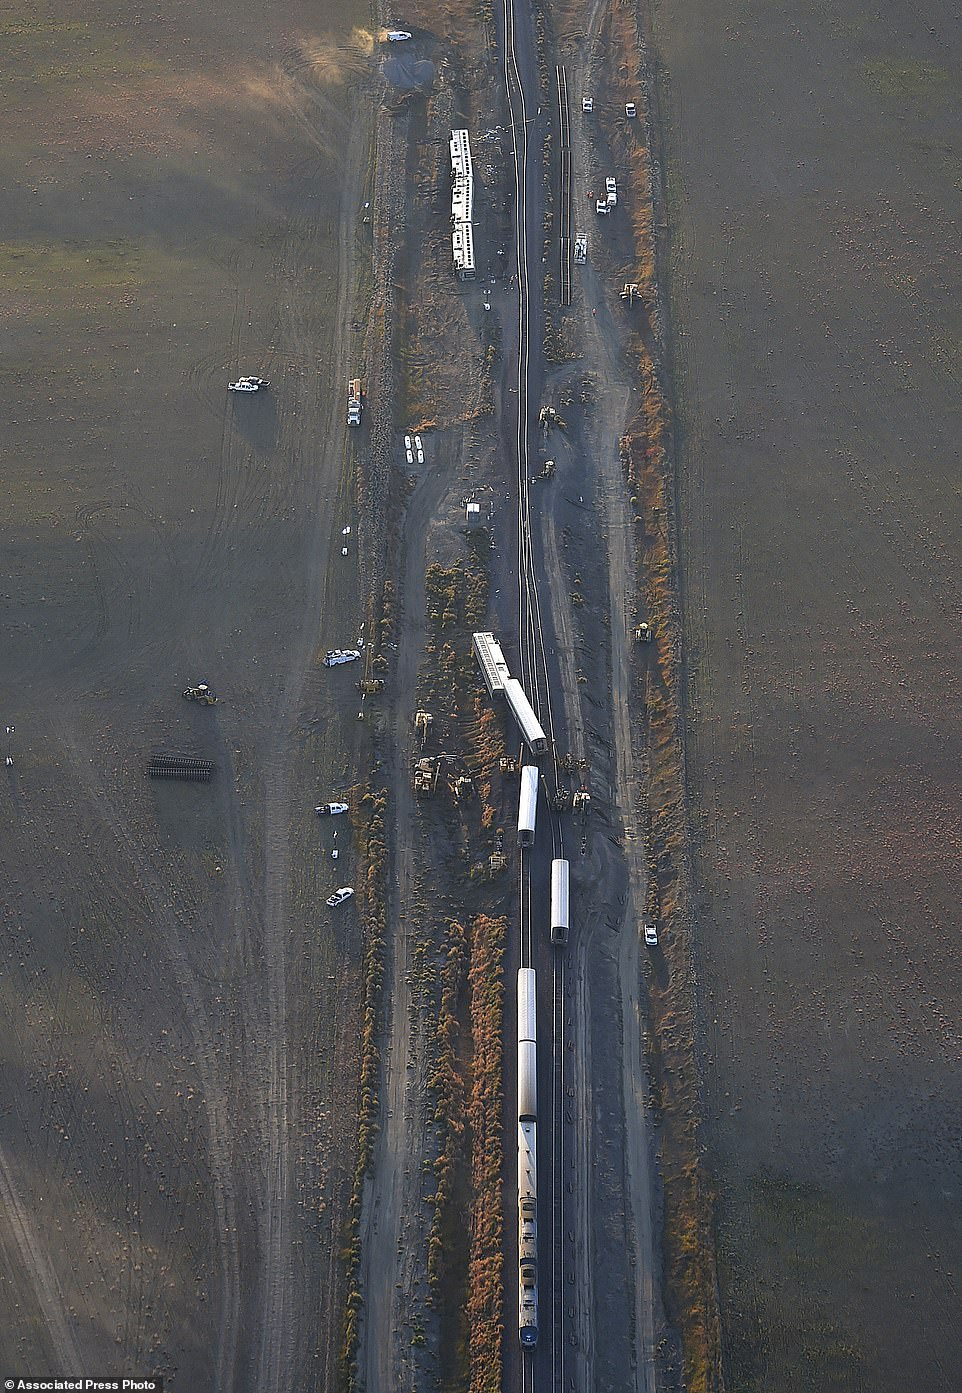 This aerial view taken Sunday, Sept. 26, 2021, shows an Amtrak train that derailed in north-central Montana Saturday that killed multiple people and left others hospitalized, officials said. The westbound Empire Builder was en route to Seattle from Chicago, with two locomotives and 10 cars, when it left the tracks about 4 p.m. Saturday. (Larry Mayer/The Billings Gazette via AP)